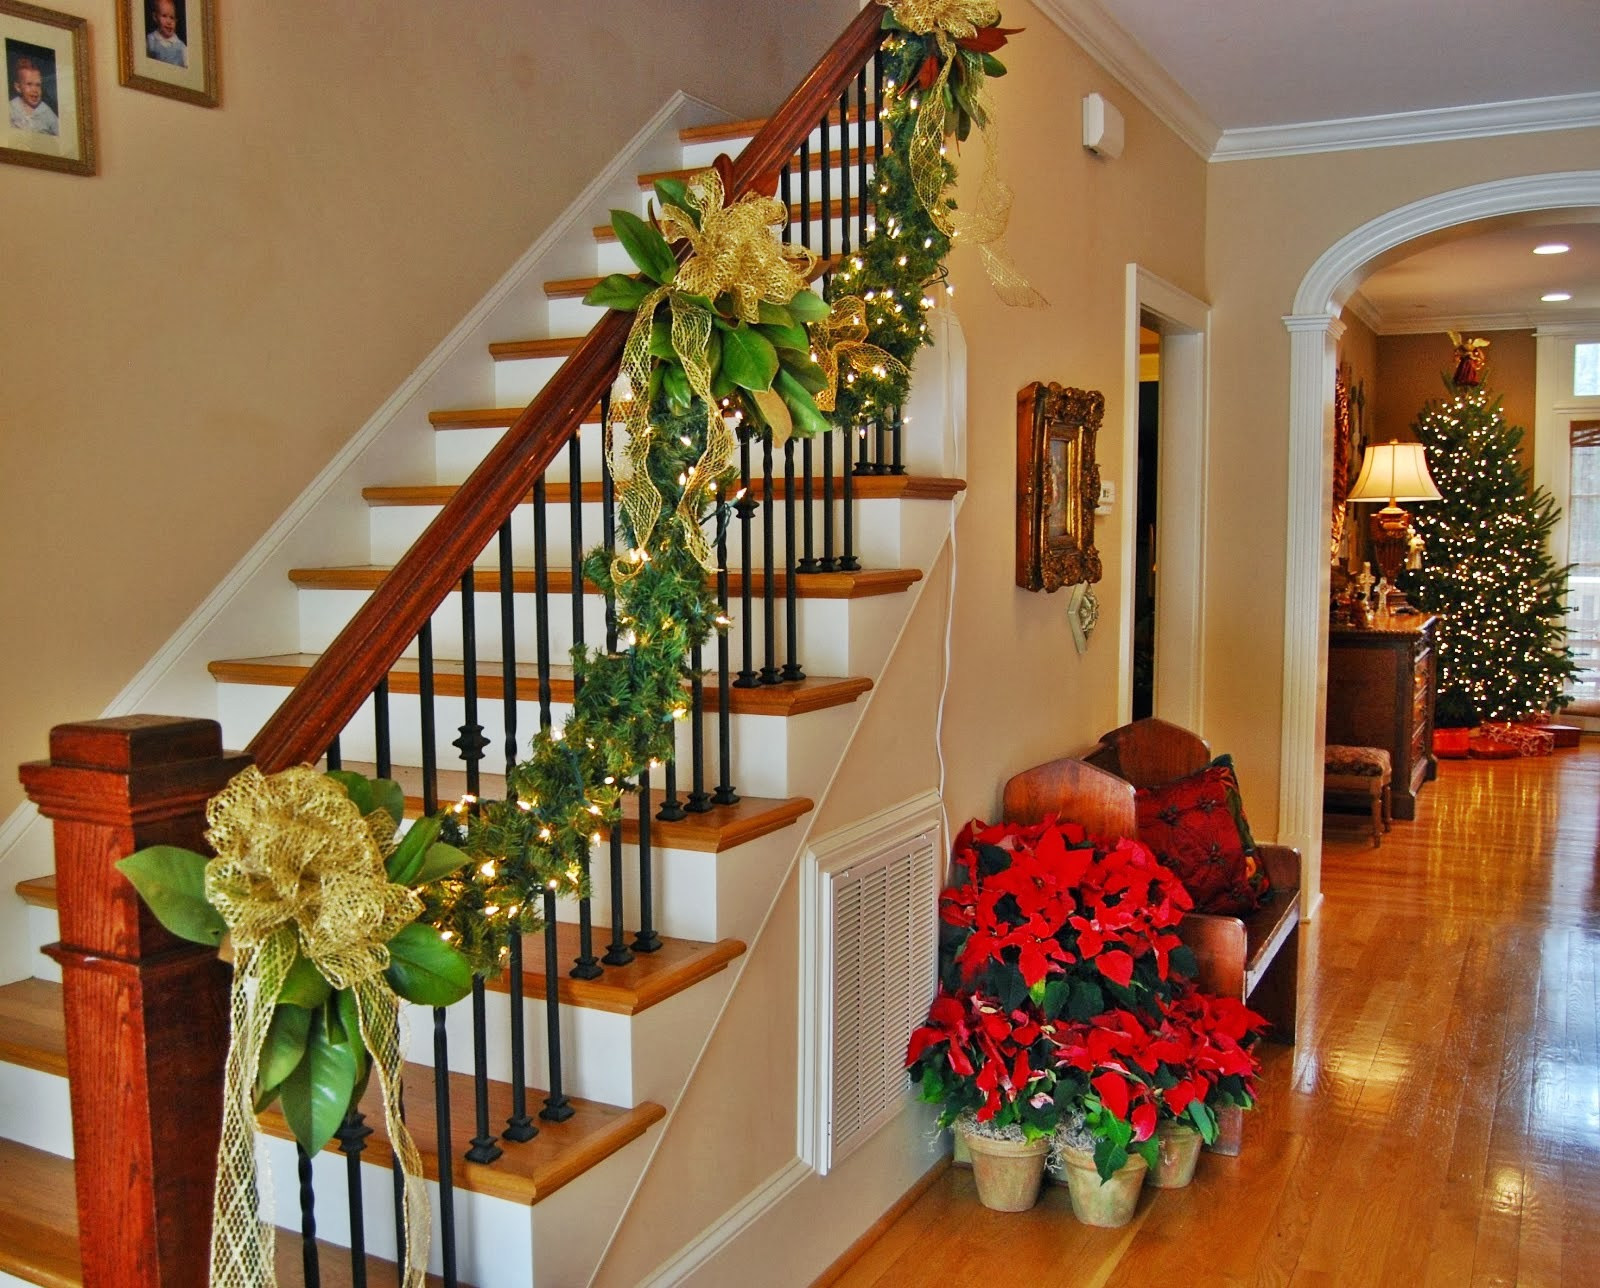 Faux Greenery For Christmas Decorating & The Domestic Curator: Fresh vs. Faux Greenery For Christmas Decorating